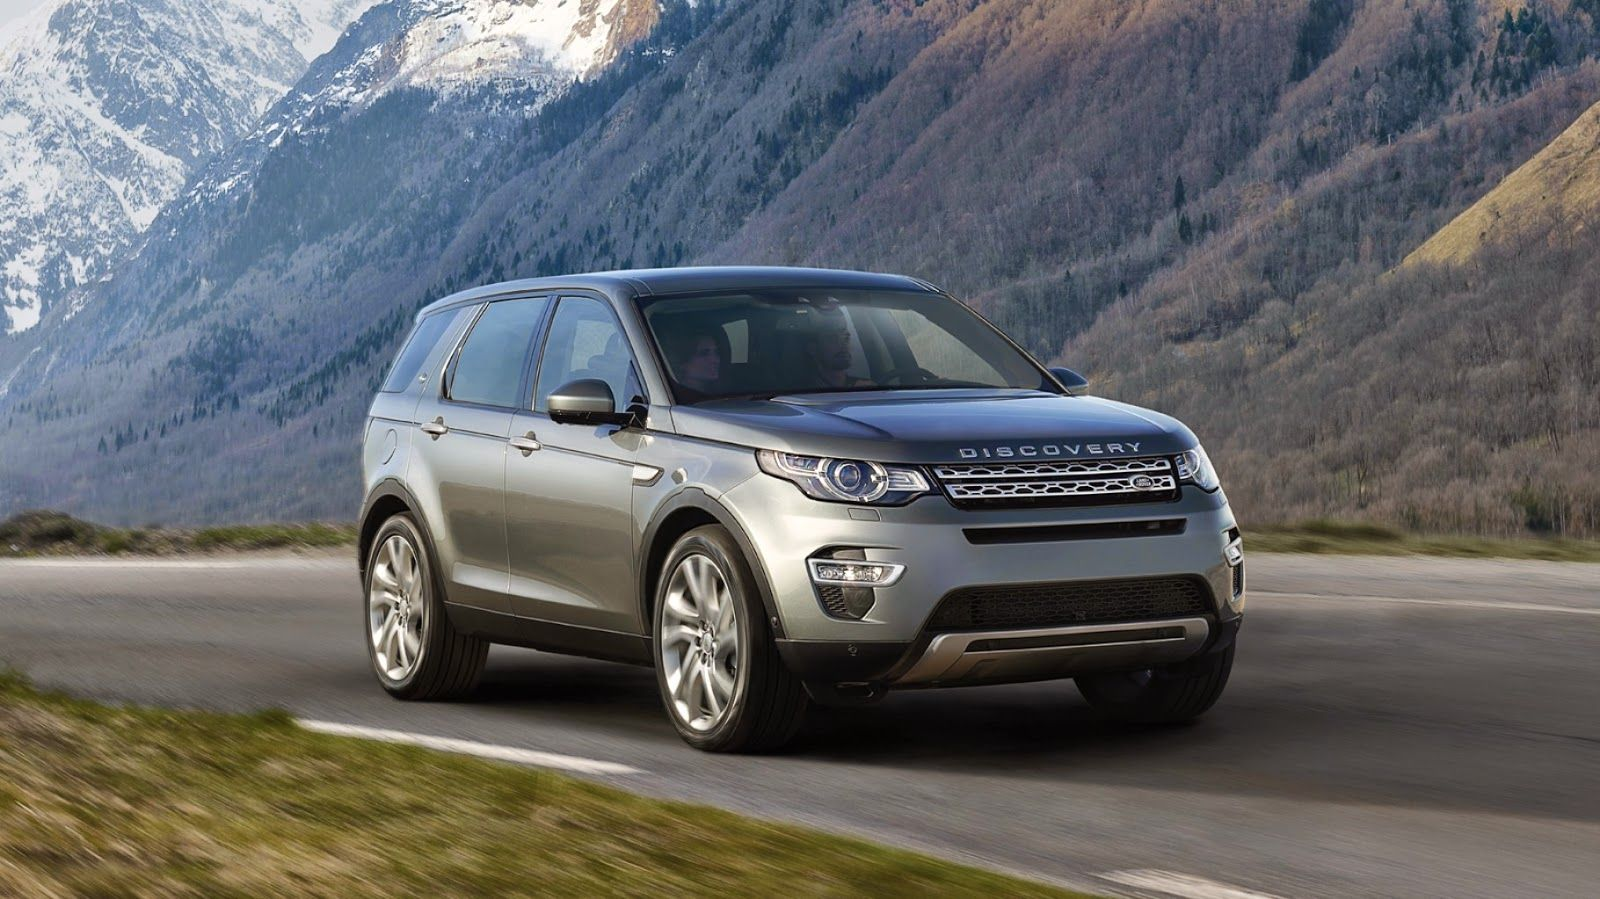 New discovery sport mid size suv land rover australia